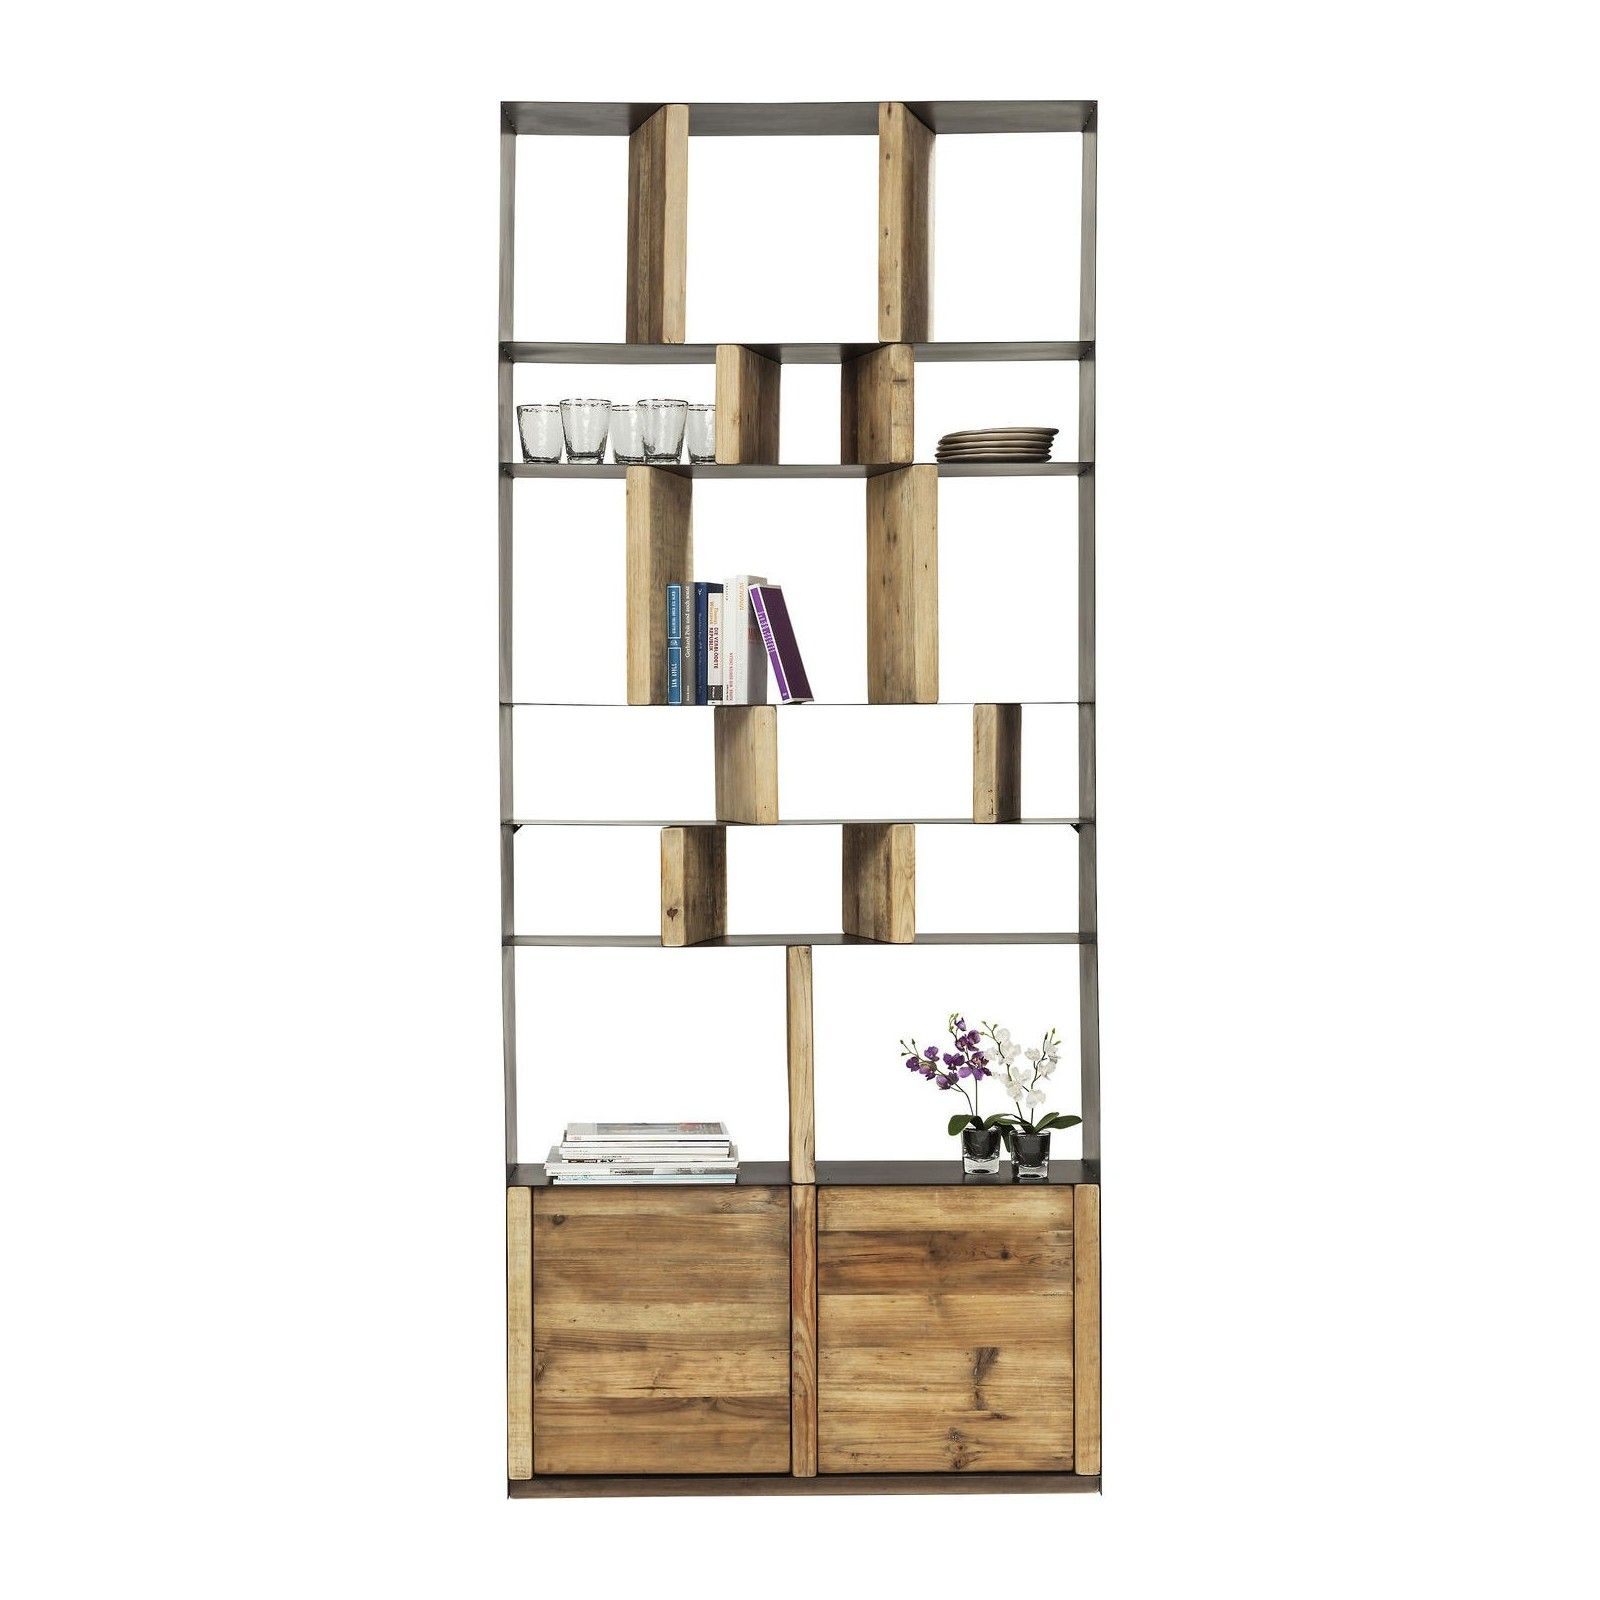 Kare Design Ameublement Et Decoration Etagere Authentico Zick Zack 120 Meubles Staiindojkt Ac Id